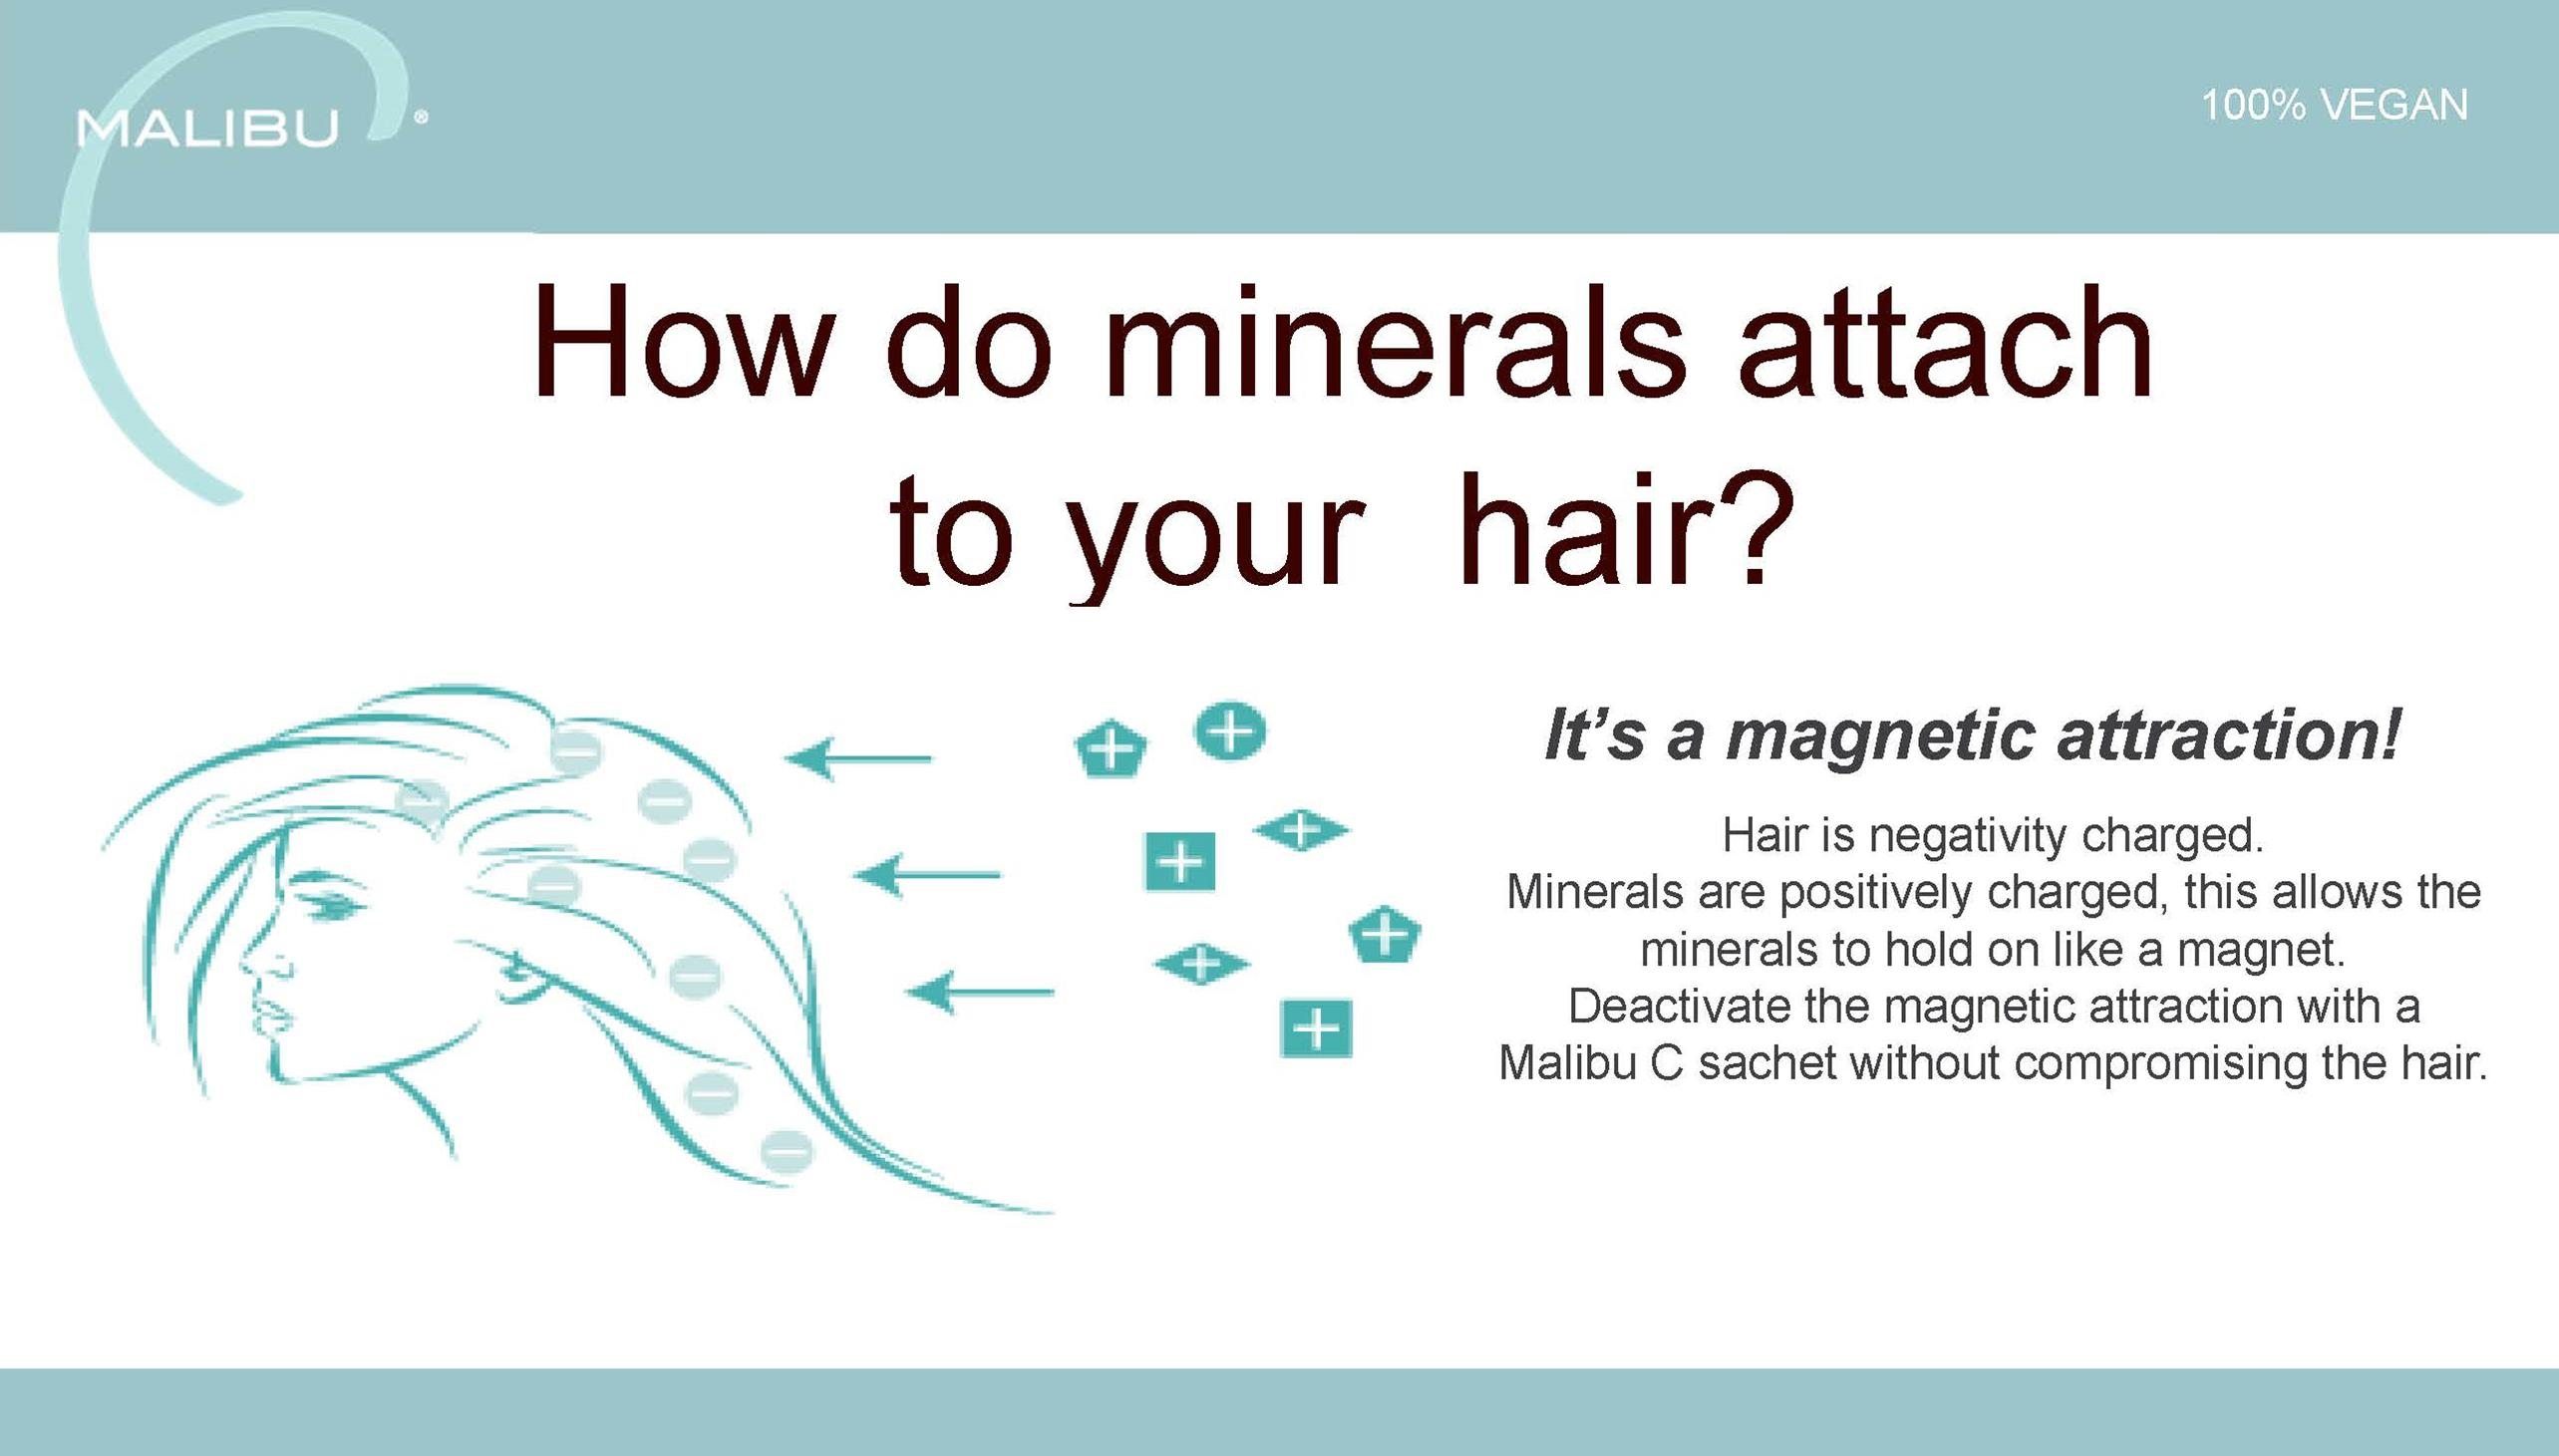 How do minerals attach to my hair?